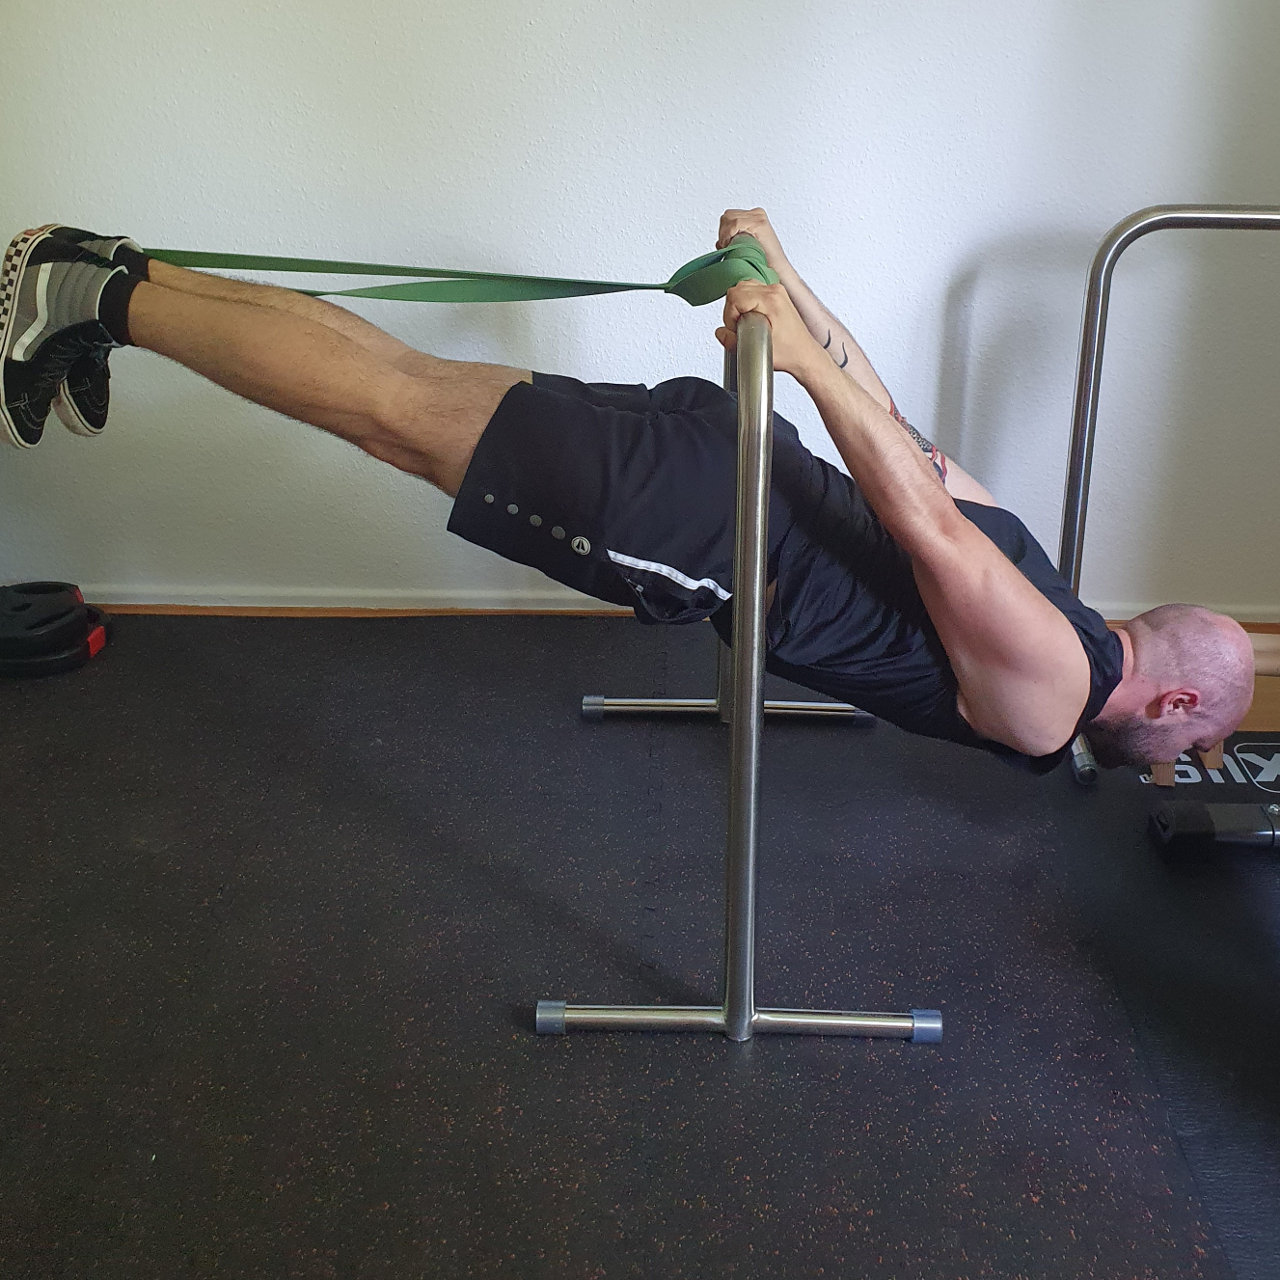 assisted_back_lever